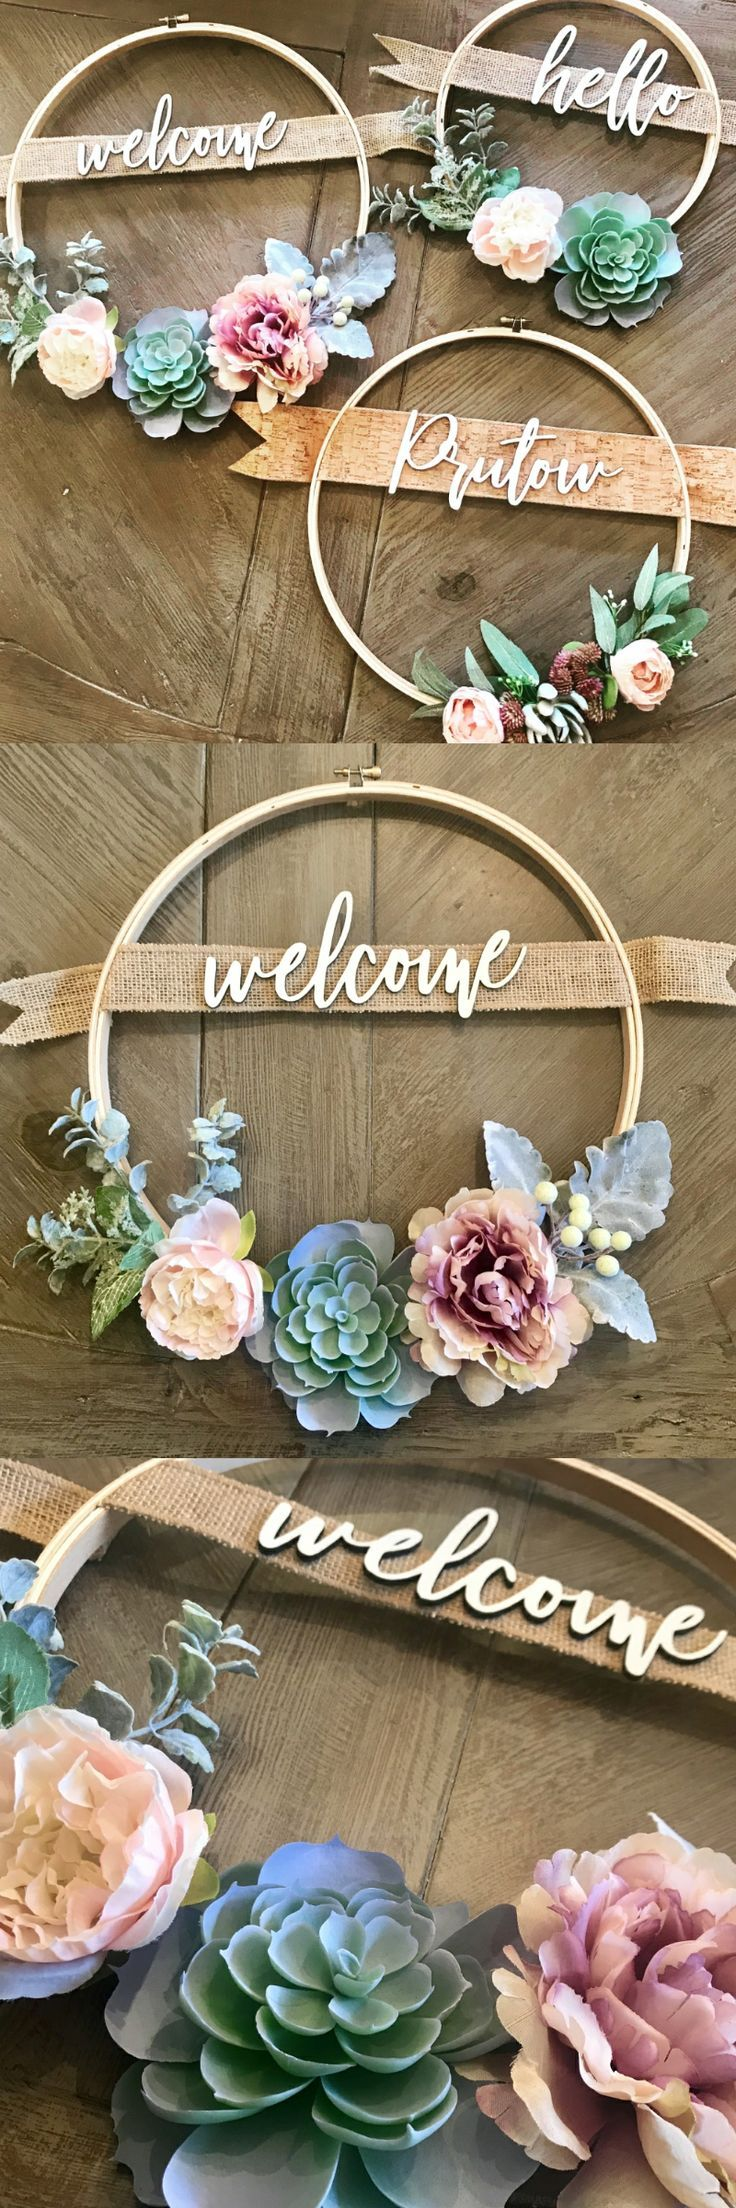 12in Succulent Wreath with Family Name or Custom Greeting  Custom Wreath  12in Hoop Wreath  Custom Wreath  Farmhouse  Rustic Decor is part of Wreaths - Welcome Wreath  Custom Succulent Wreath with Family Name  Personalized Gift  12in Embroidery Hoop Wreath  Farmhouse Decor  Rustic Decor This custom 12 inch, wreath features a pretty combination of faux succulents and flowers and it is personalized with your family name or a greeting of your choice  This wreath would be darling hung on a door or in a gallery wall  It is made to order with 'your family name' or 'welcome' or 'hello' or a greeting of your choice  Buy one for your family or as a hostess or housewarming gift! DETAILS Each custom wreath is made to order with a 12  inch embroidery hoop and the succulents & flowers will vary  If you would like specific colors please let me know in the 'note to seller' box at purchase  The lettering is laser cut wood that is glued onto burlap ribbon  Please leave the name or greeting that you would like on your wreath in the 'note to seller' box when you checkout  Like this but want a different saying or personalization  Send me a convo about a custom order! HOW TO ORDER  To purchase this personalized wreath, all you need to do is add the desired product to your cart and put the custom information you would like on your wreath in the  notes to seller  section, exactly how you would like it to appear, at checkout  Once we have your order, we will create and send you a proof through etsy convos within 24 hours of purchase   PROCESSING  We will not make and ship your item until we have your approval  We make and ship items daily! So your order will ship the next day once you approve the design  Shipping will take from 13 business days in the U S  International orders will take longer to reach their destination